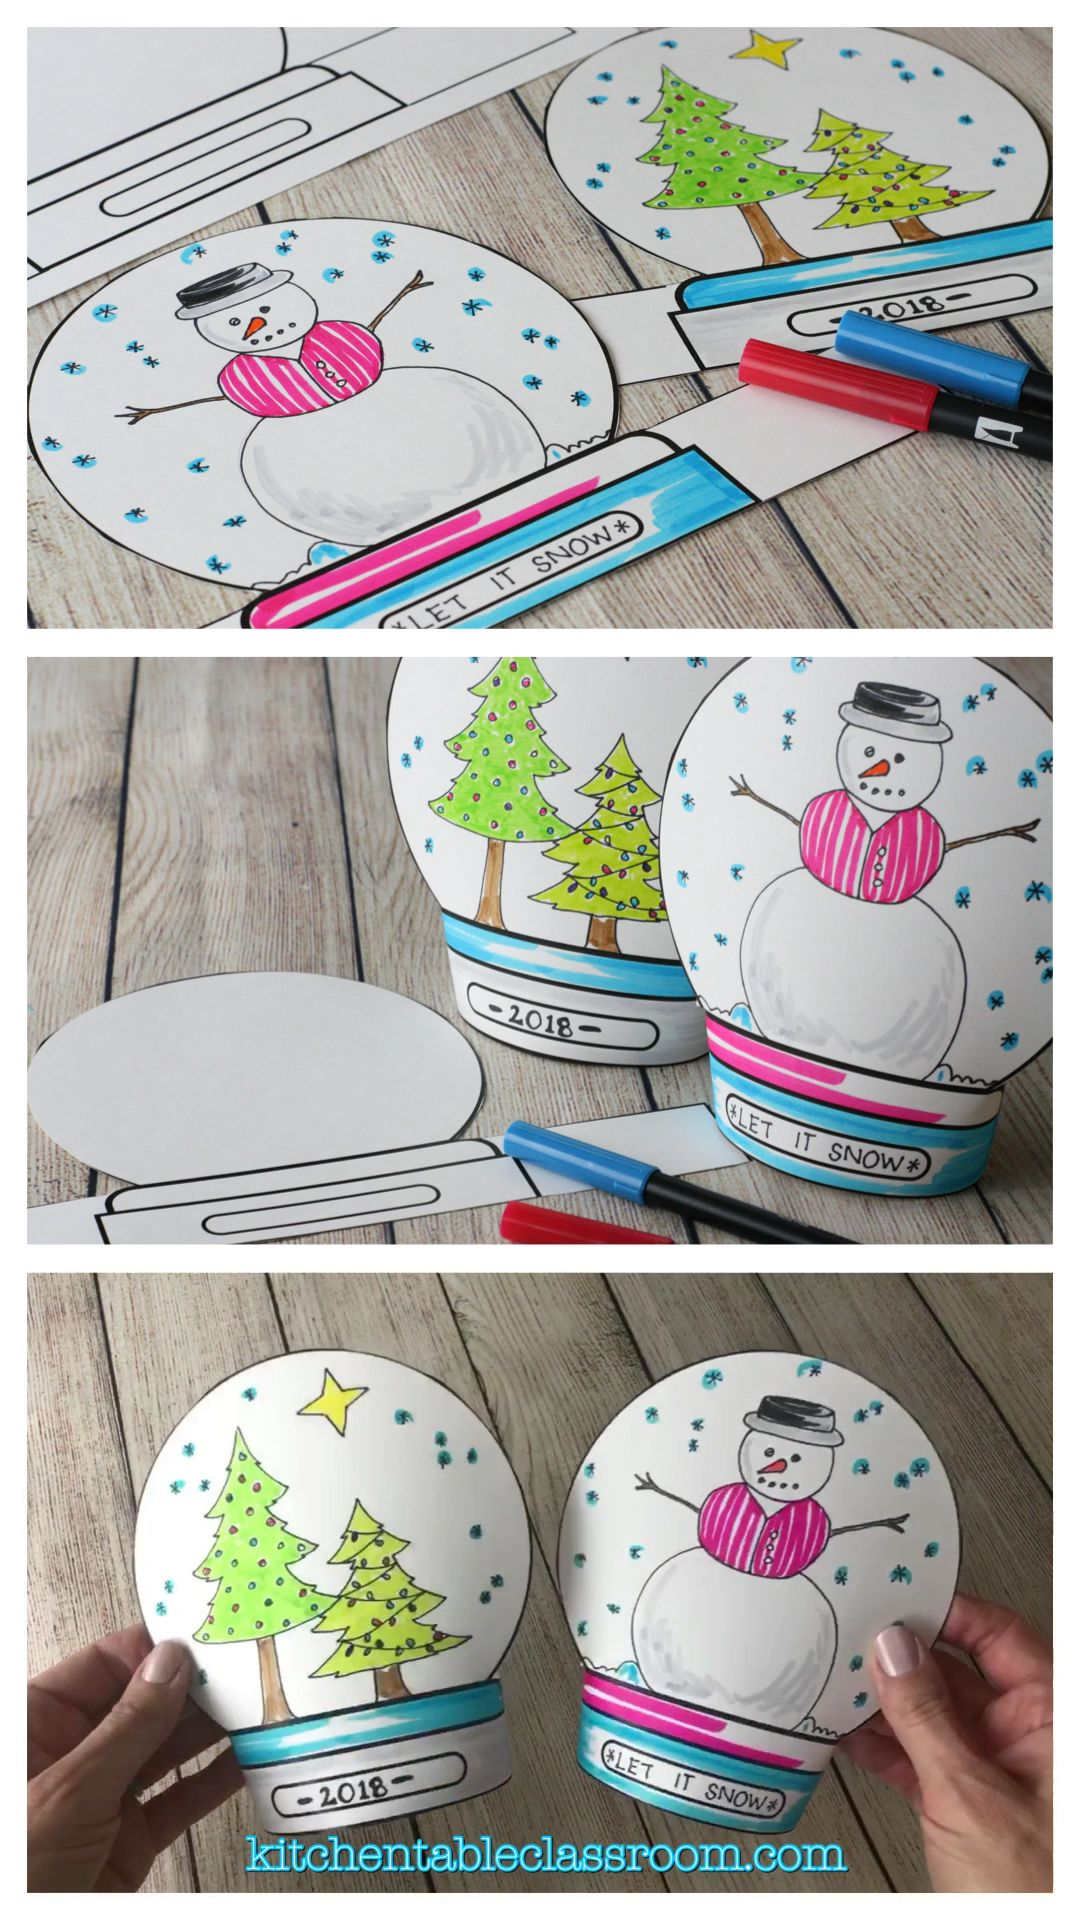 Make a Snowglobe- Print & Draw Stand-up Template - The Kitchen Table Classroom #craft